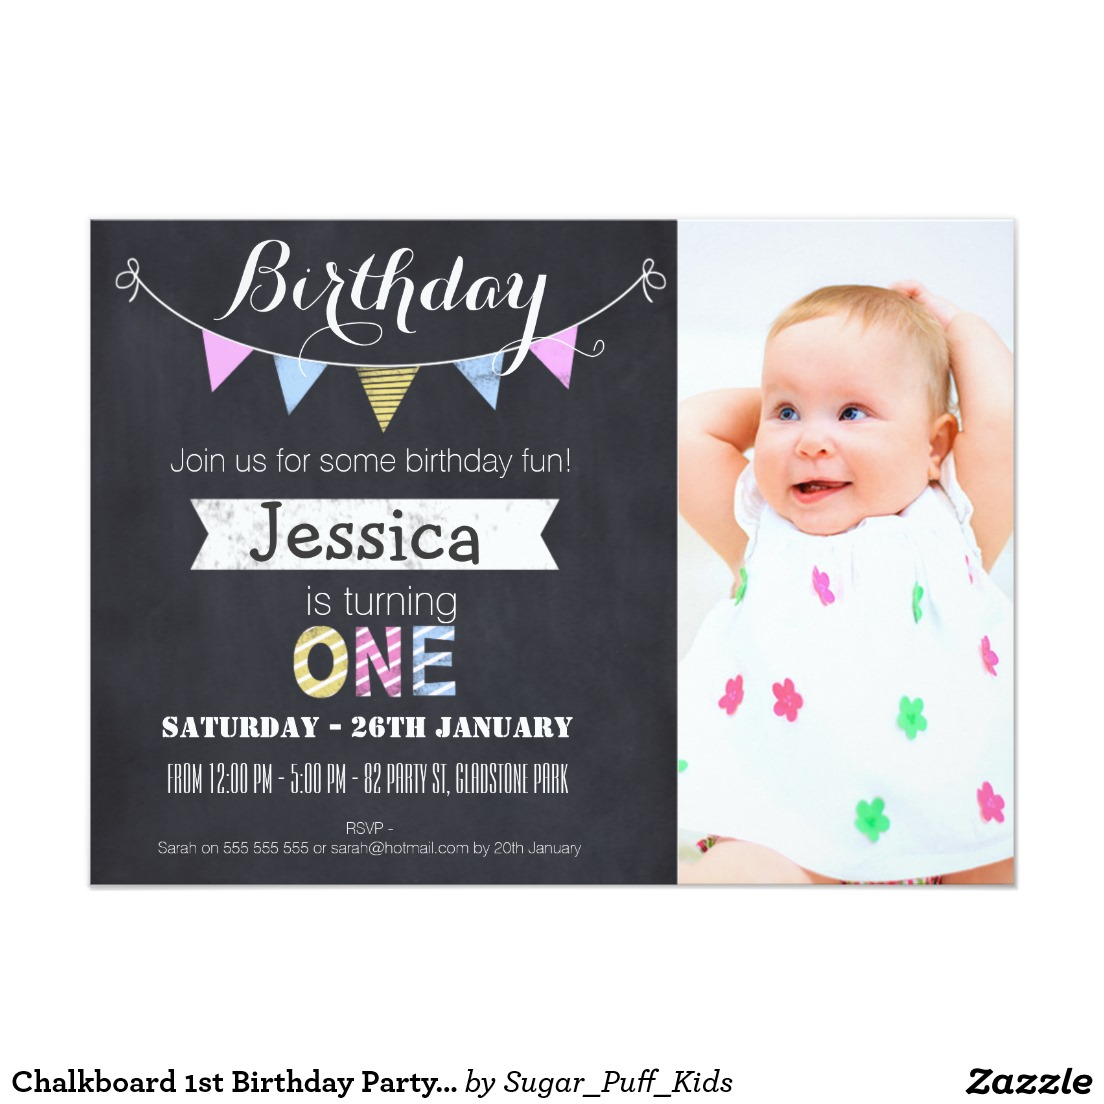 first birthday online invitation templates free ; first-birthday-party-invitations-and-the-invitations-of-the-Birthday-Invitation-Templates-to-the-party-sketch-with-cool-idea-14